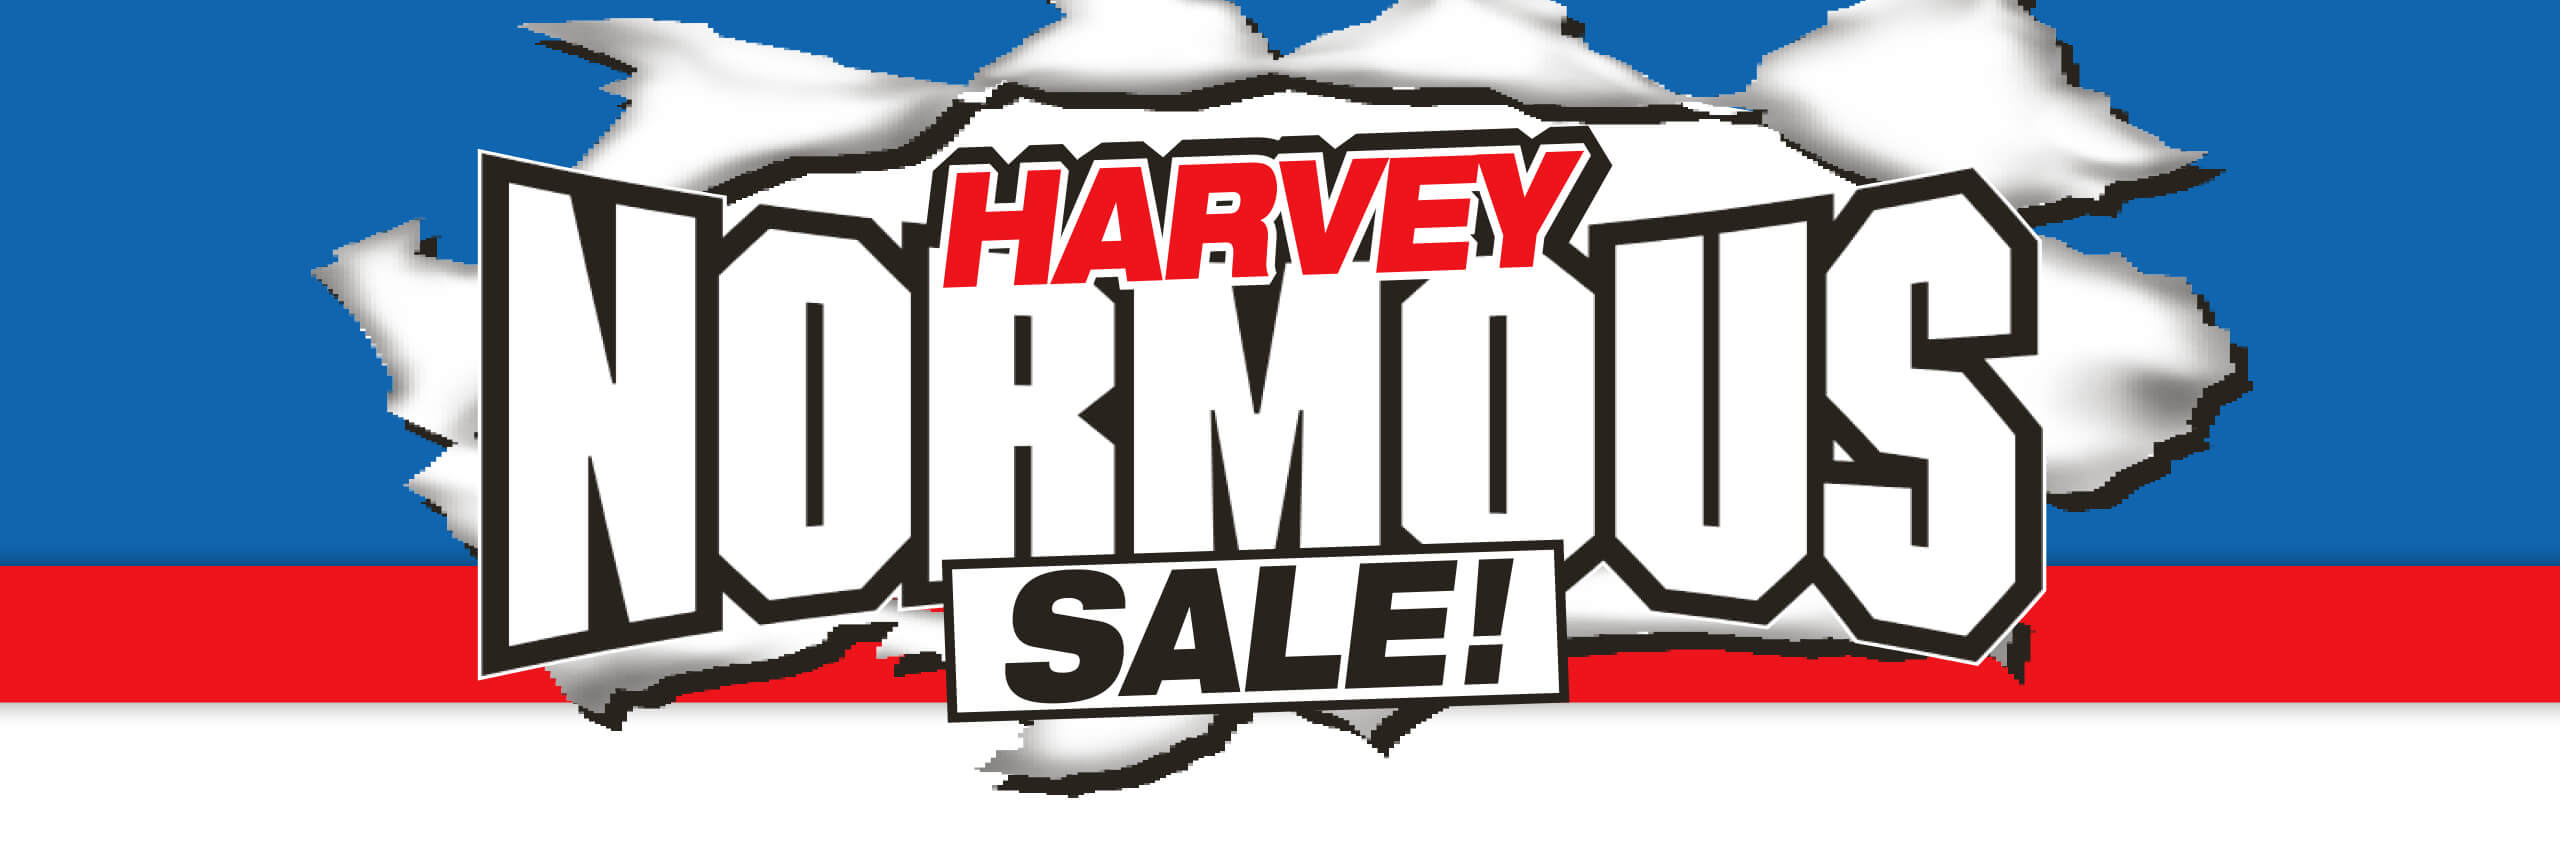 [havery normous sale]